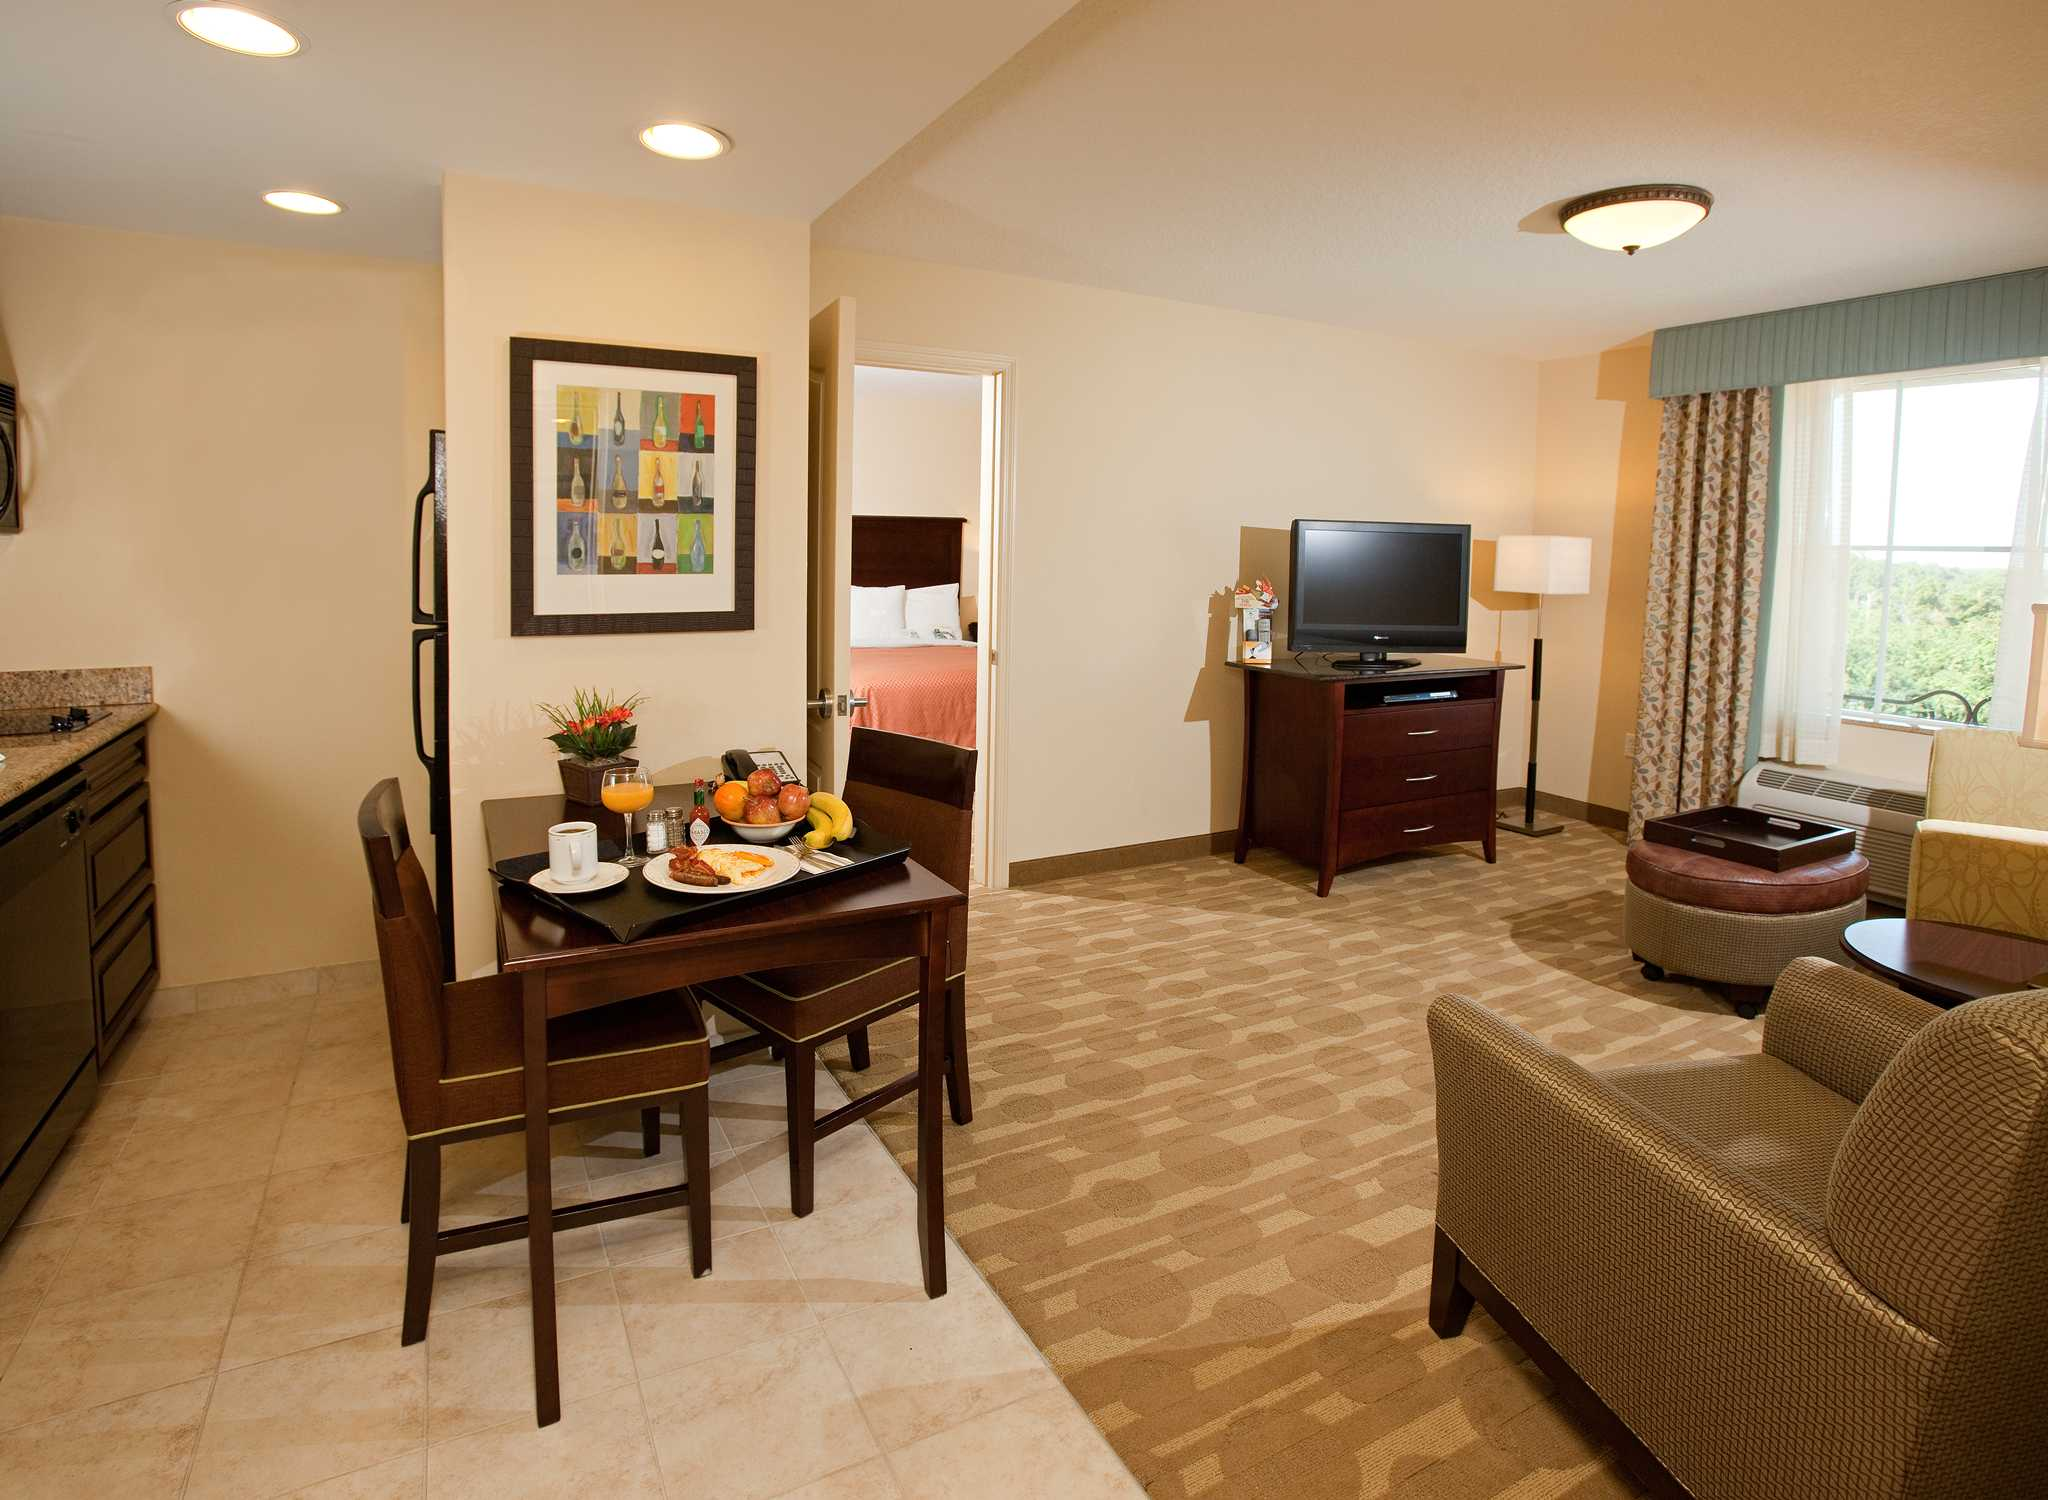 hotels with kitchen in orlando rugs ikea lake buena vista hotel homewood suites